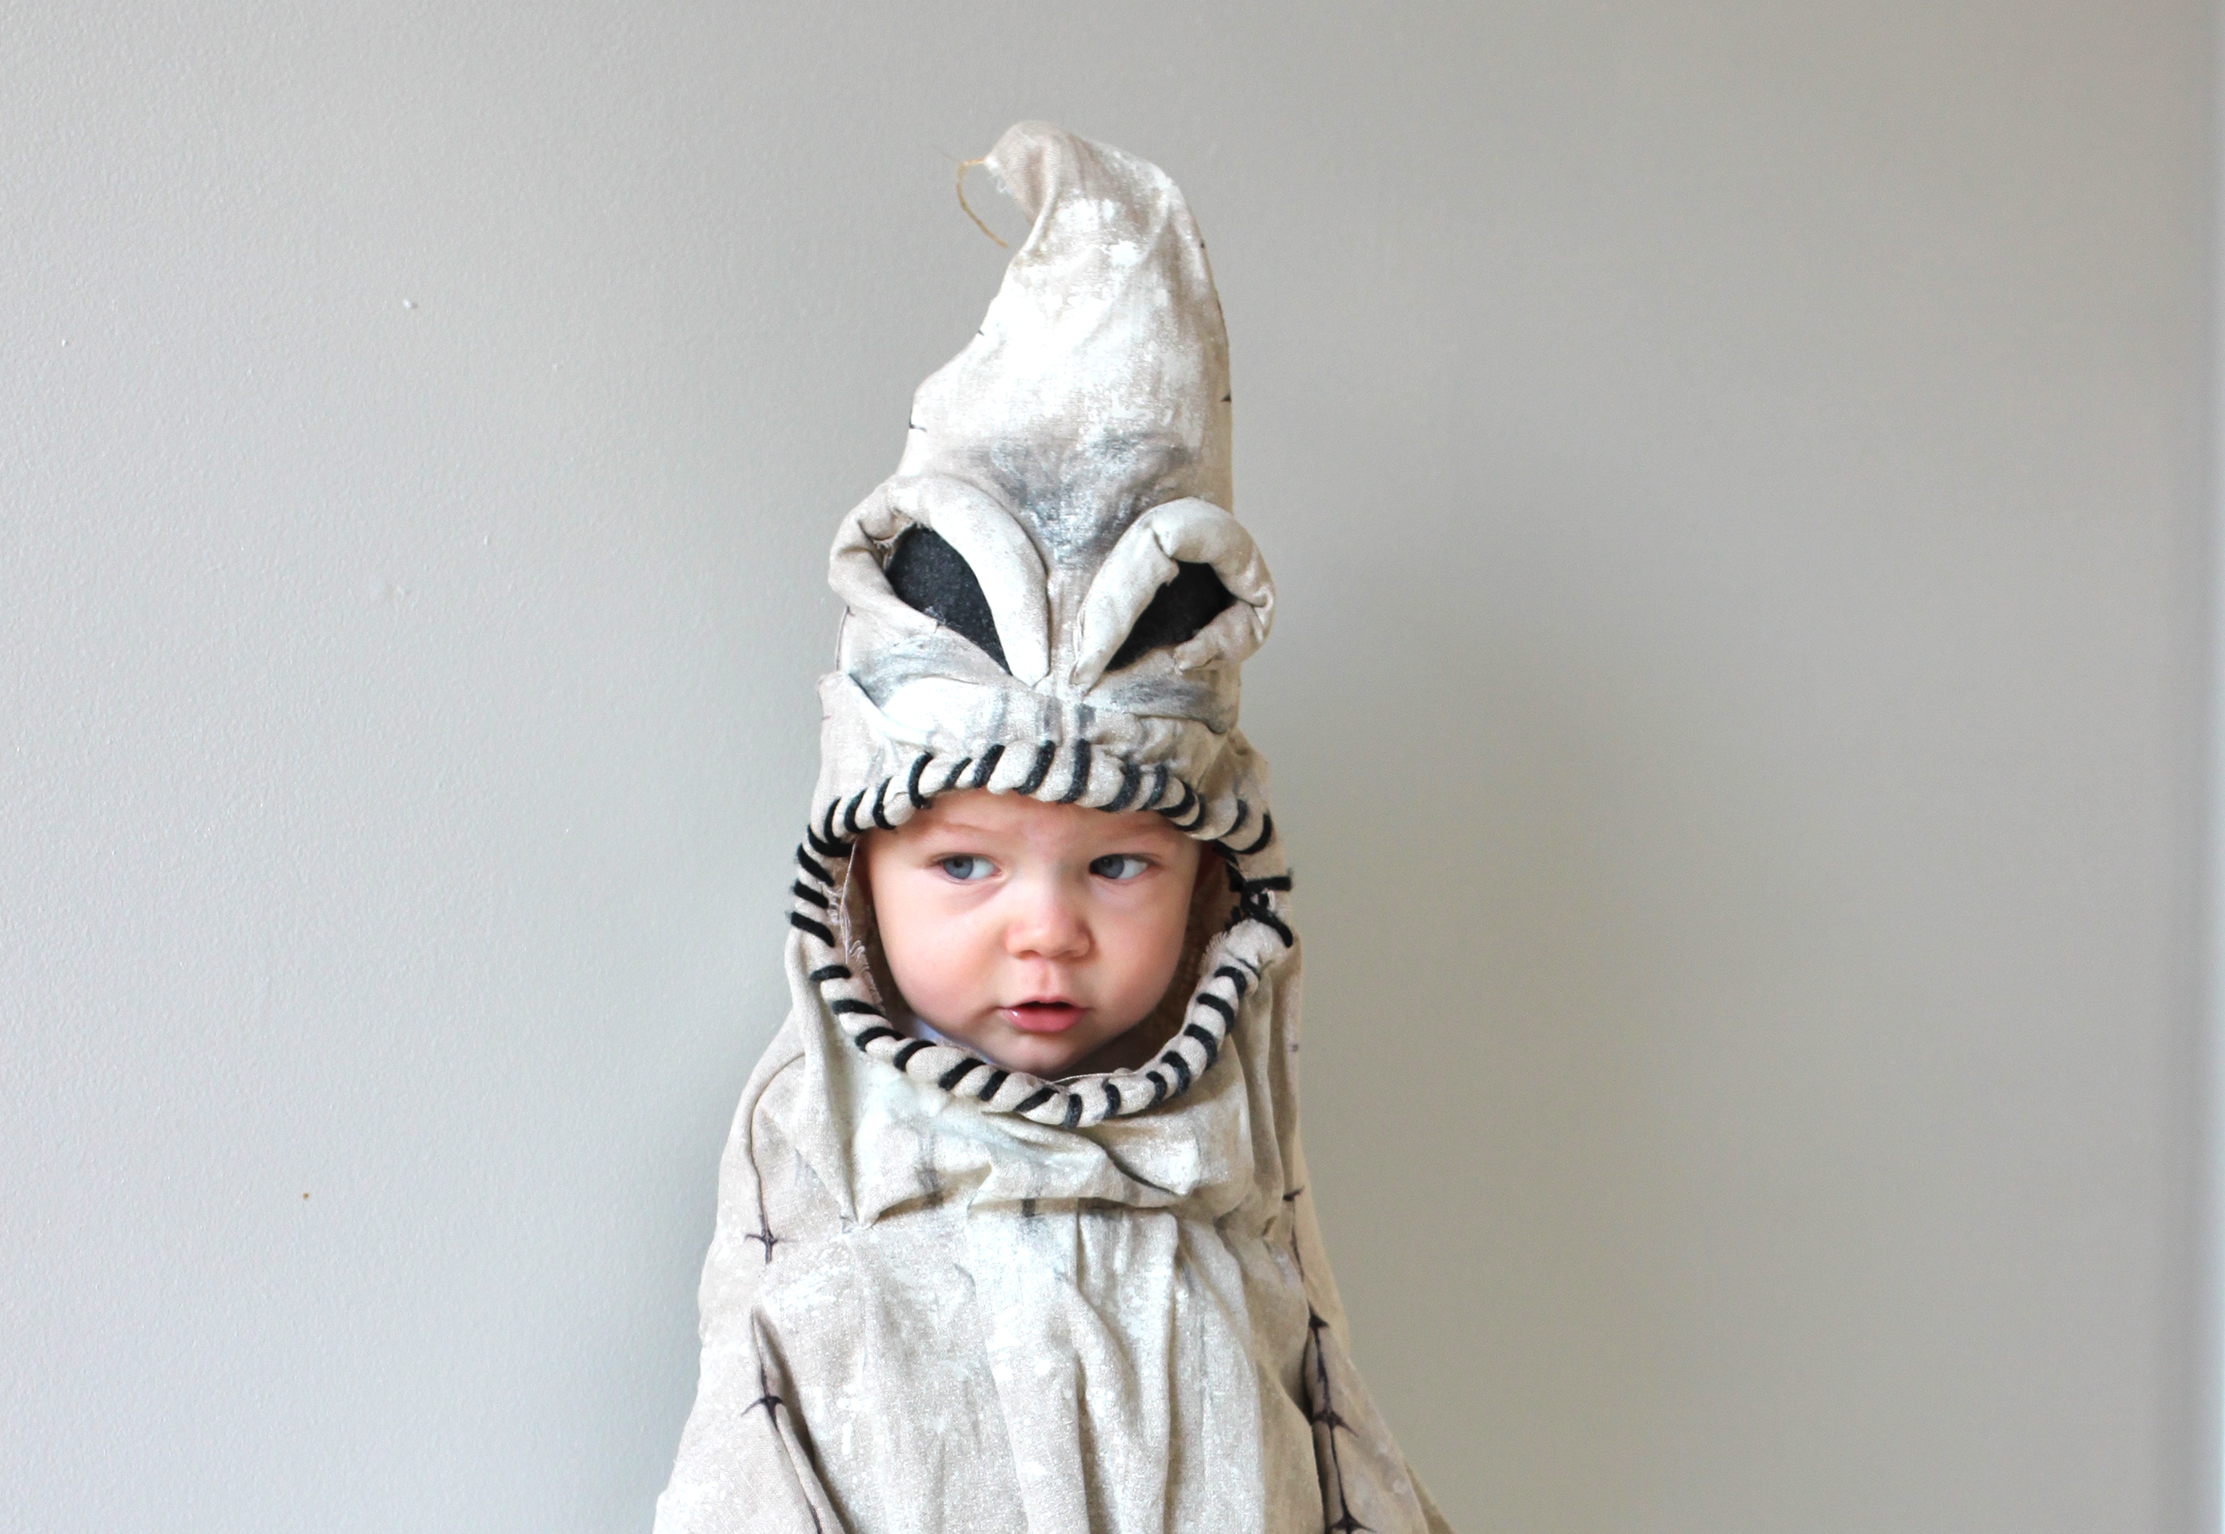 Nightmare Before Christmas Oogie Boogie Classic Toddler Costume